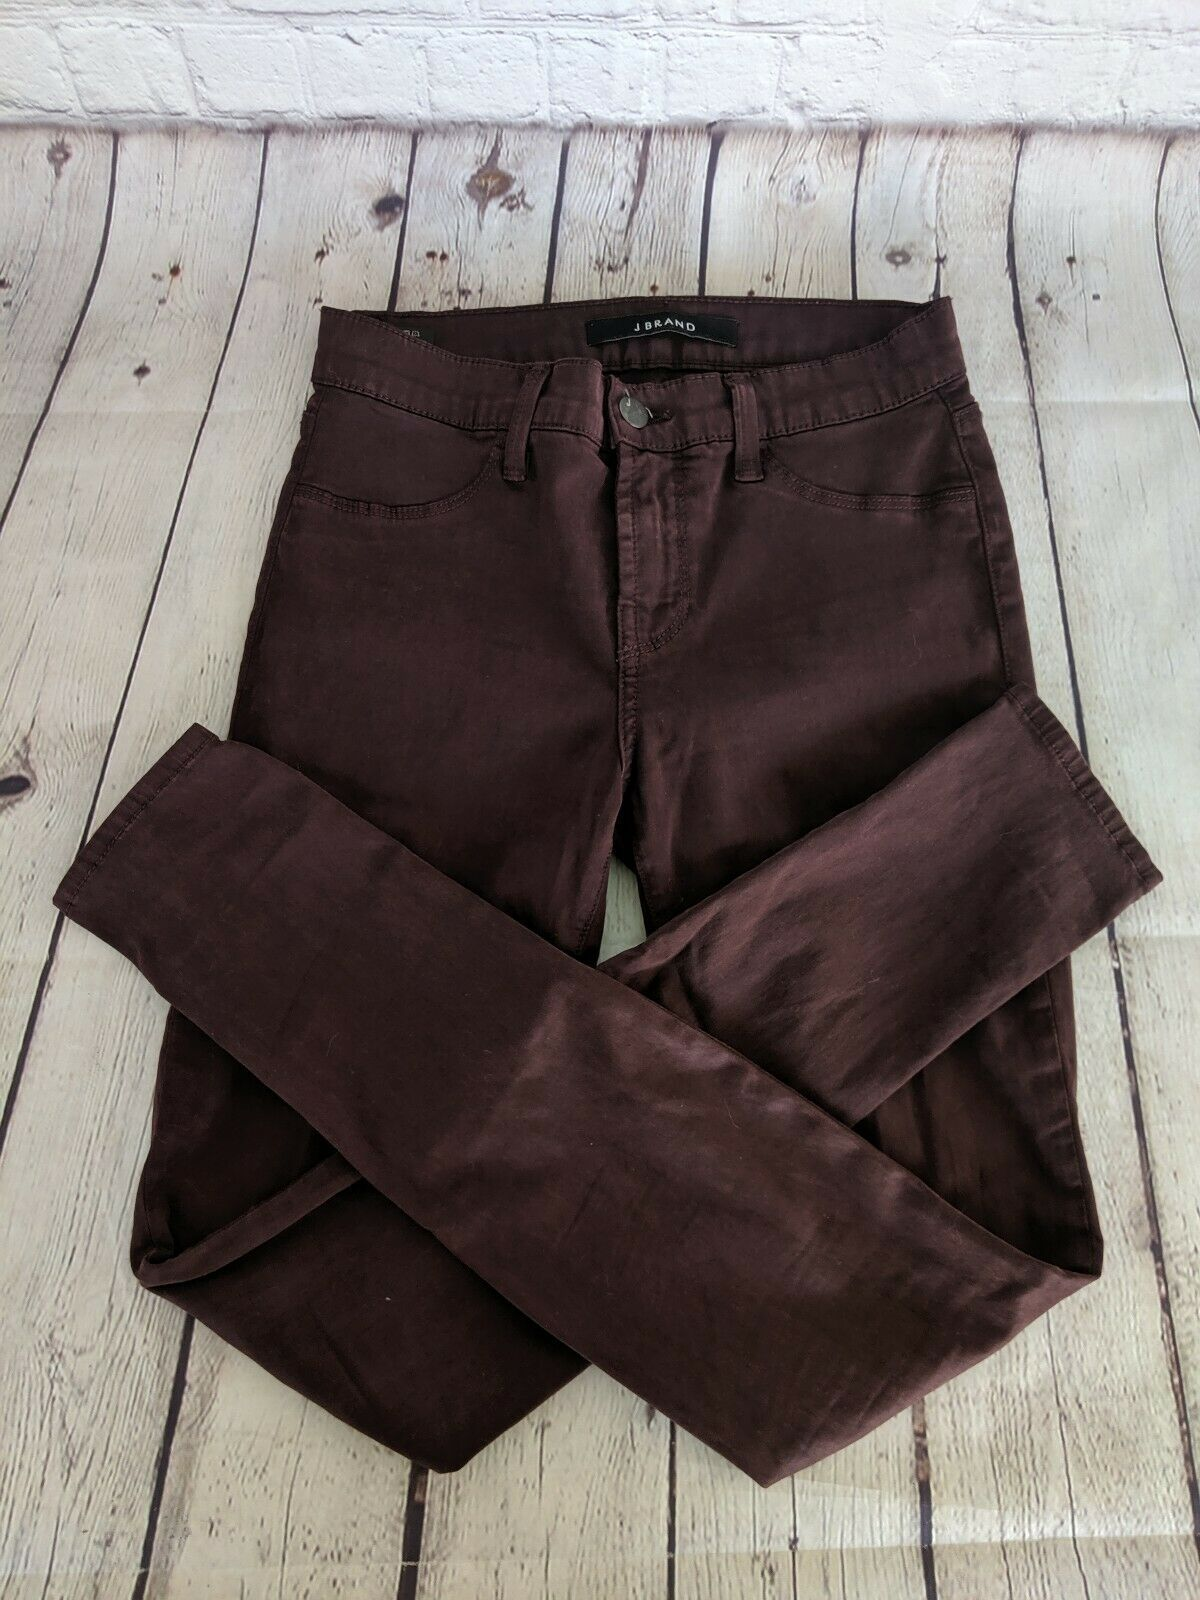 J.BRAND | Women's Size 25 Super Skinny Pinot Purple Jeans Pants Stretch